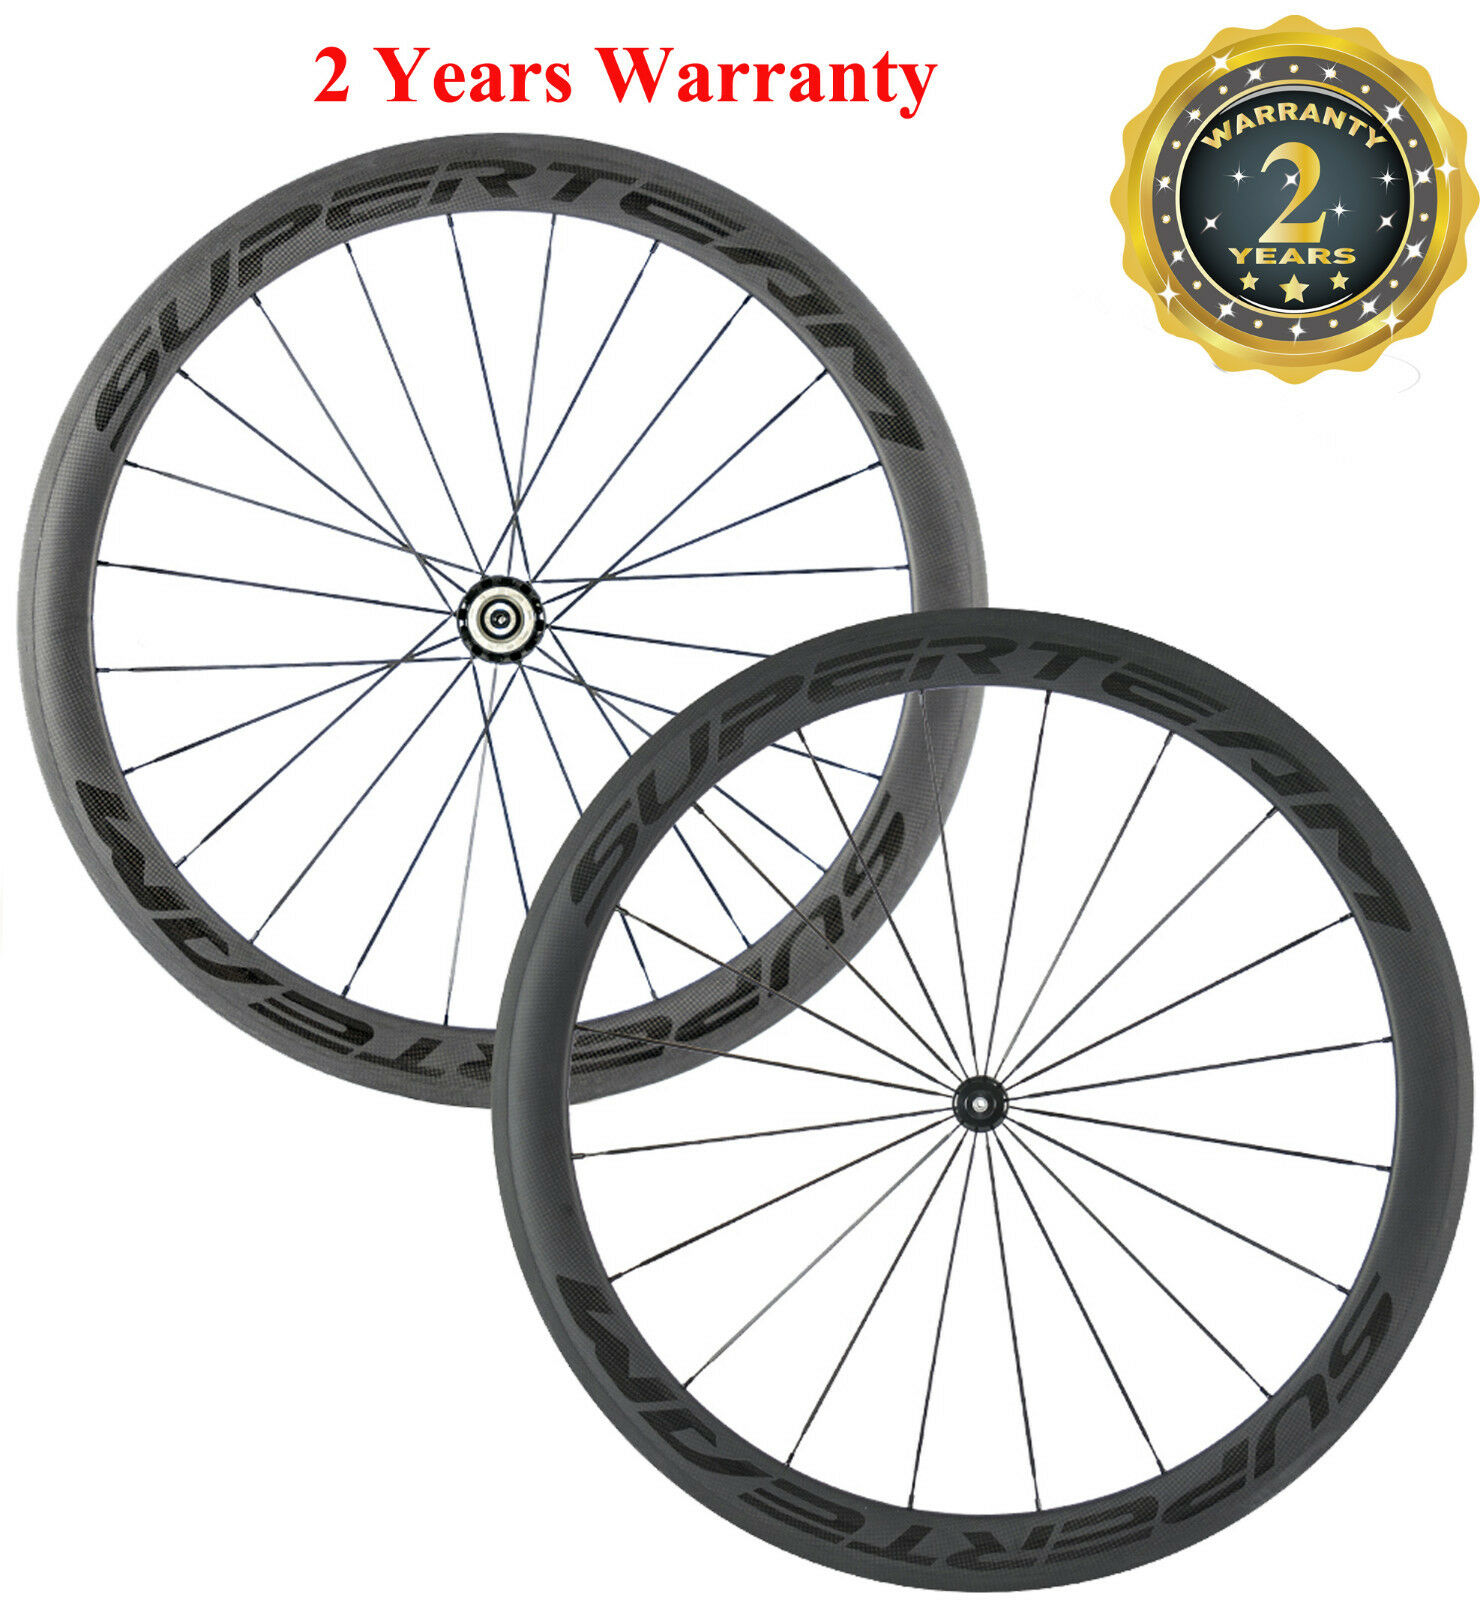 Superteam Carbon Wheels  50mm Clincher Road Bike Cycling R13 Hub Wheelset 700C  very popular